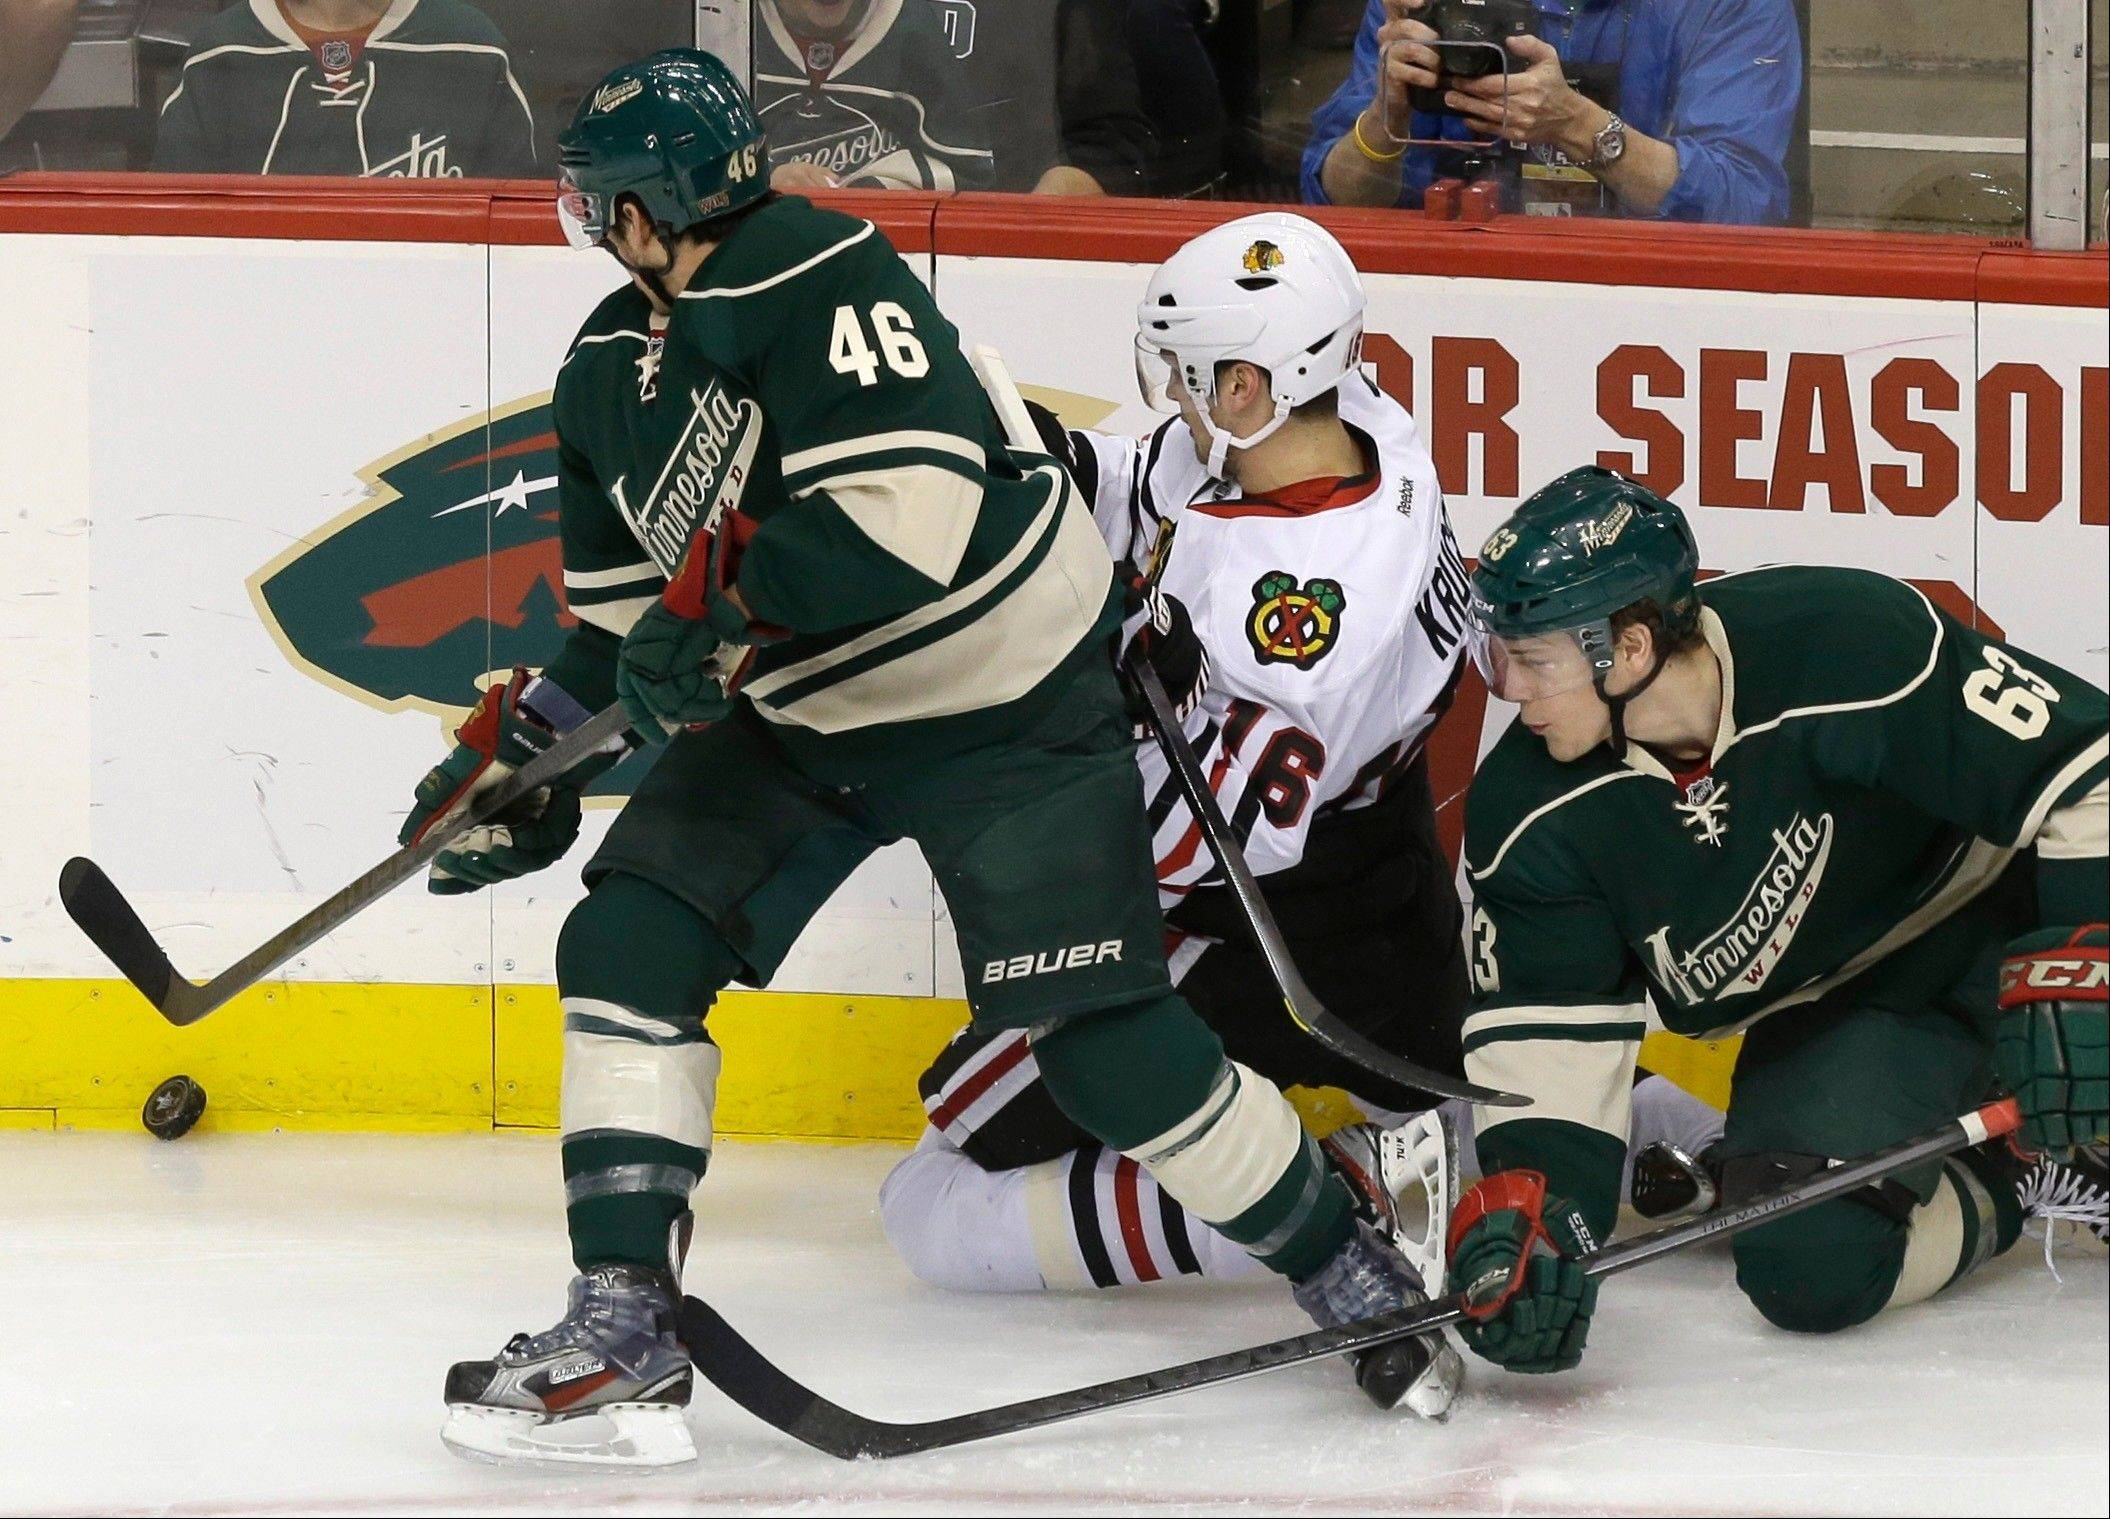 Chicago Blackhawks' Marcus Kruger, center, of Sweden gets squeezed out by Minnesota Wild's Jared Spurgeon, left, and Charlie Coyle in a race for the puck in the first period of Game 4 of an NHL hockey Stanley Cup playoff series, Tuesday, May 7, 2013 in St. Paul, Minn.